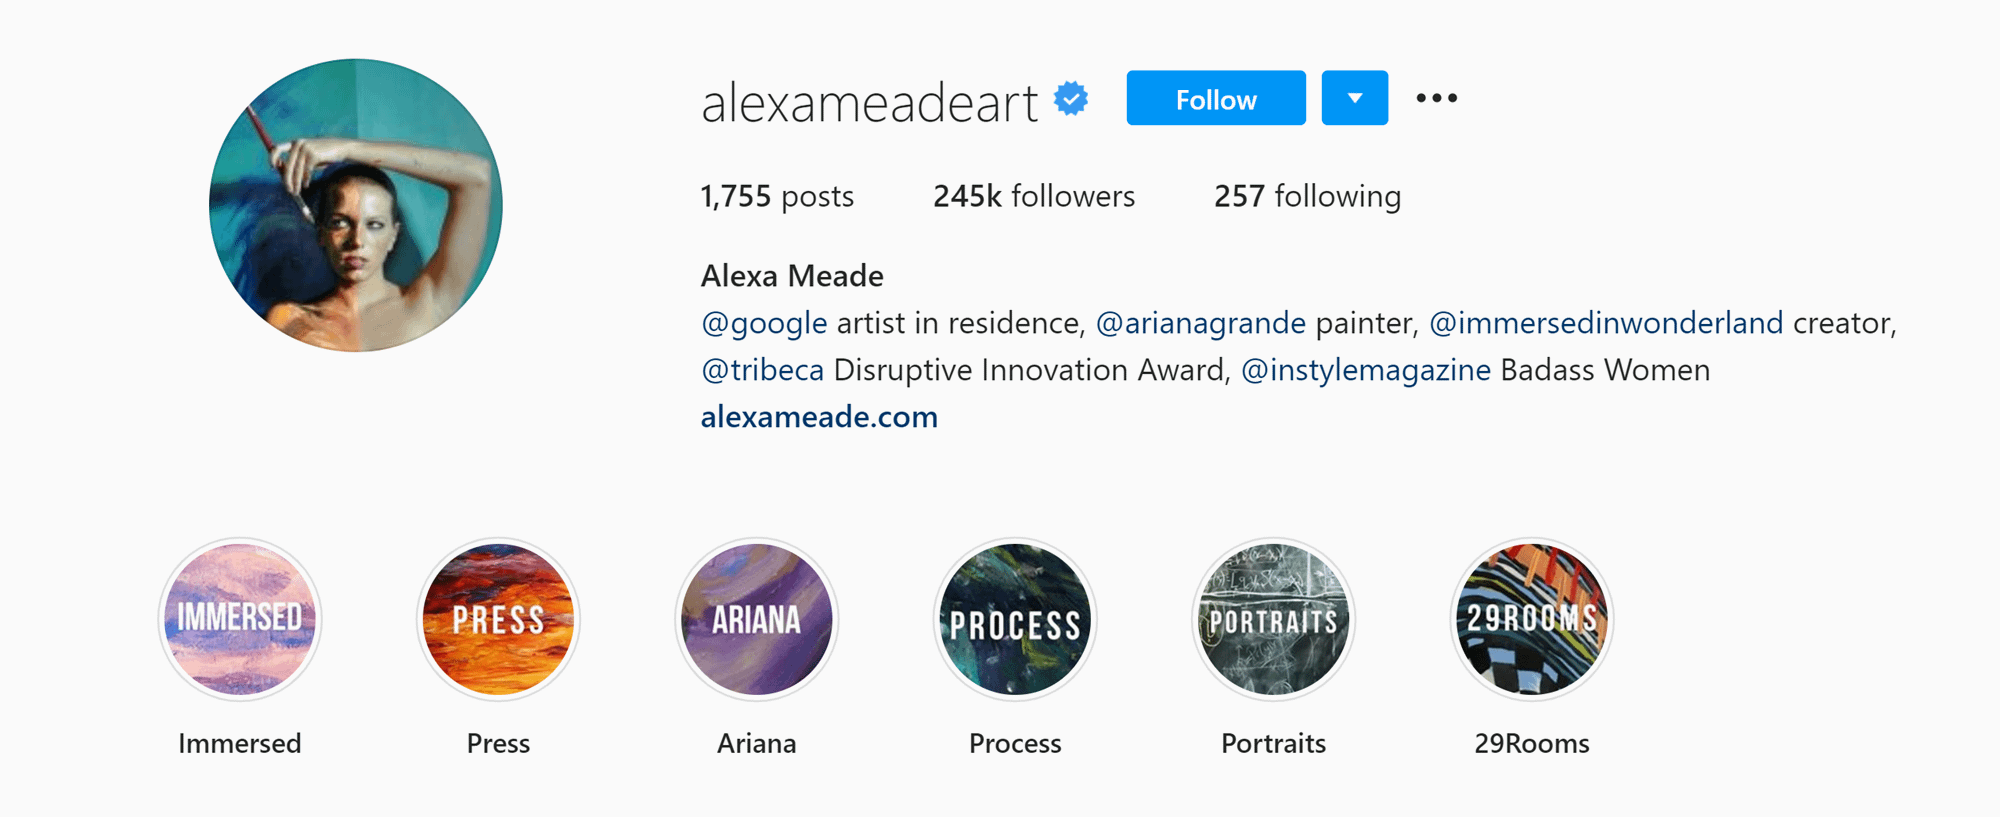 How to Get Verified on Instagram: Alexa Meade Highlights